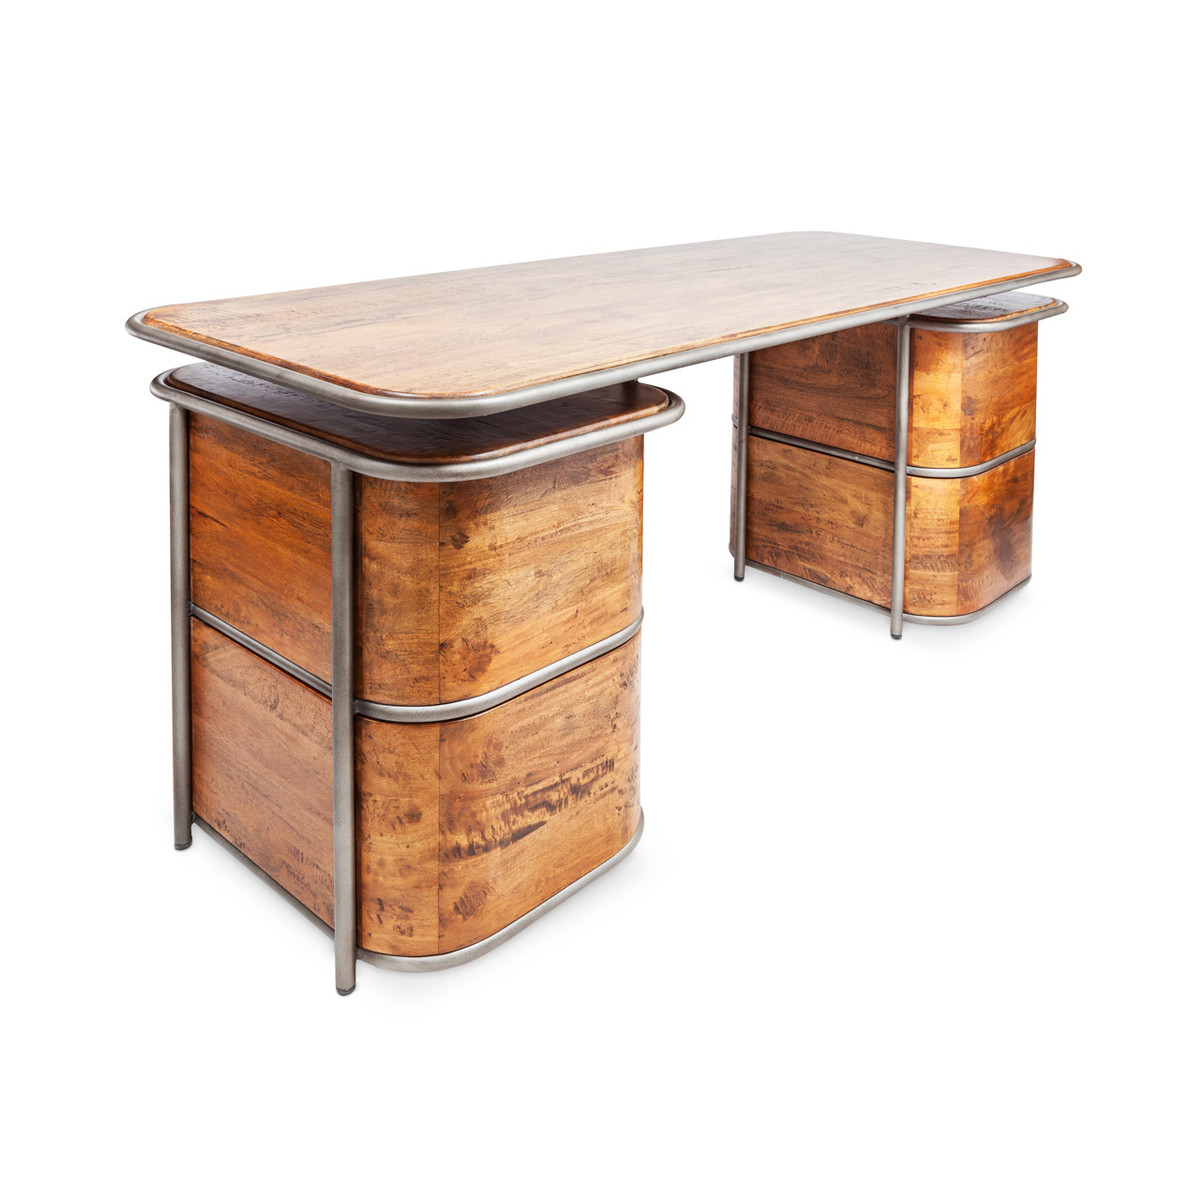 buro desk oda industrial gepolijsd itsthat gestript polished shop deco ahrend arend art stripped